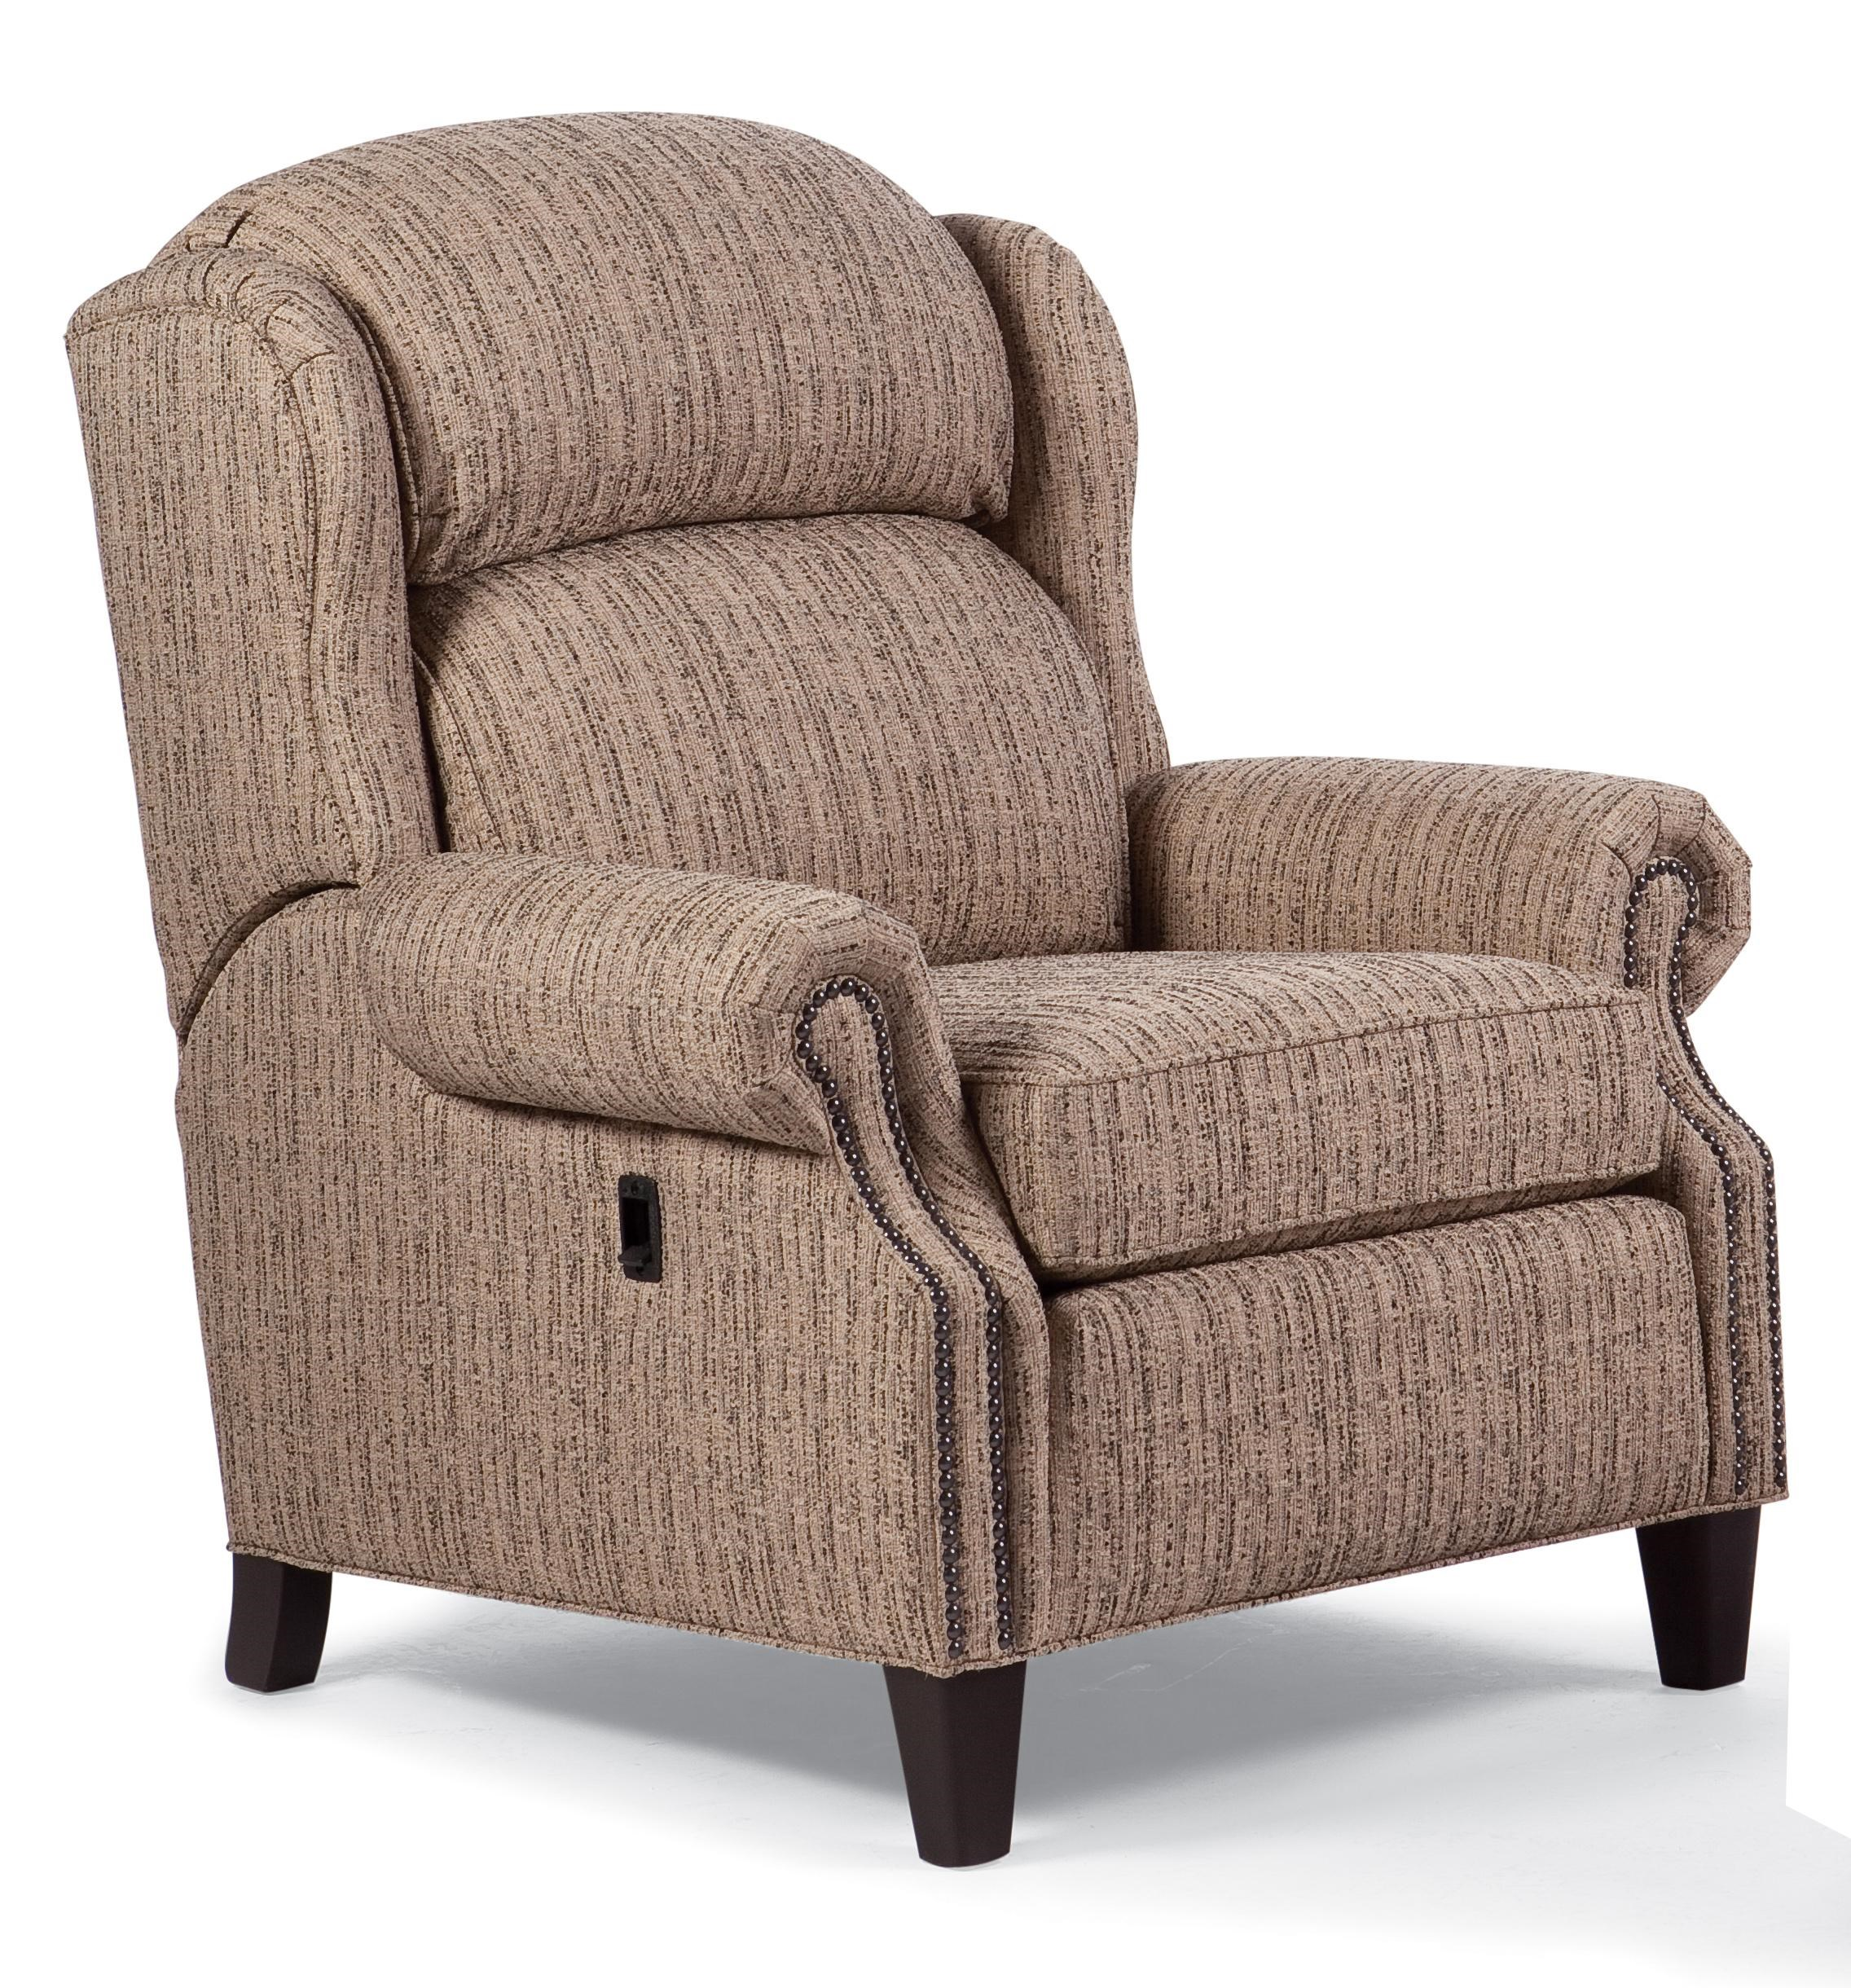 Charmant Smith Brothers Recliners 532 77 Big/Tall Motorized Reclining Chair With  Nailhead Trim | Gill Brothers Furniture | High Leg Recliners